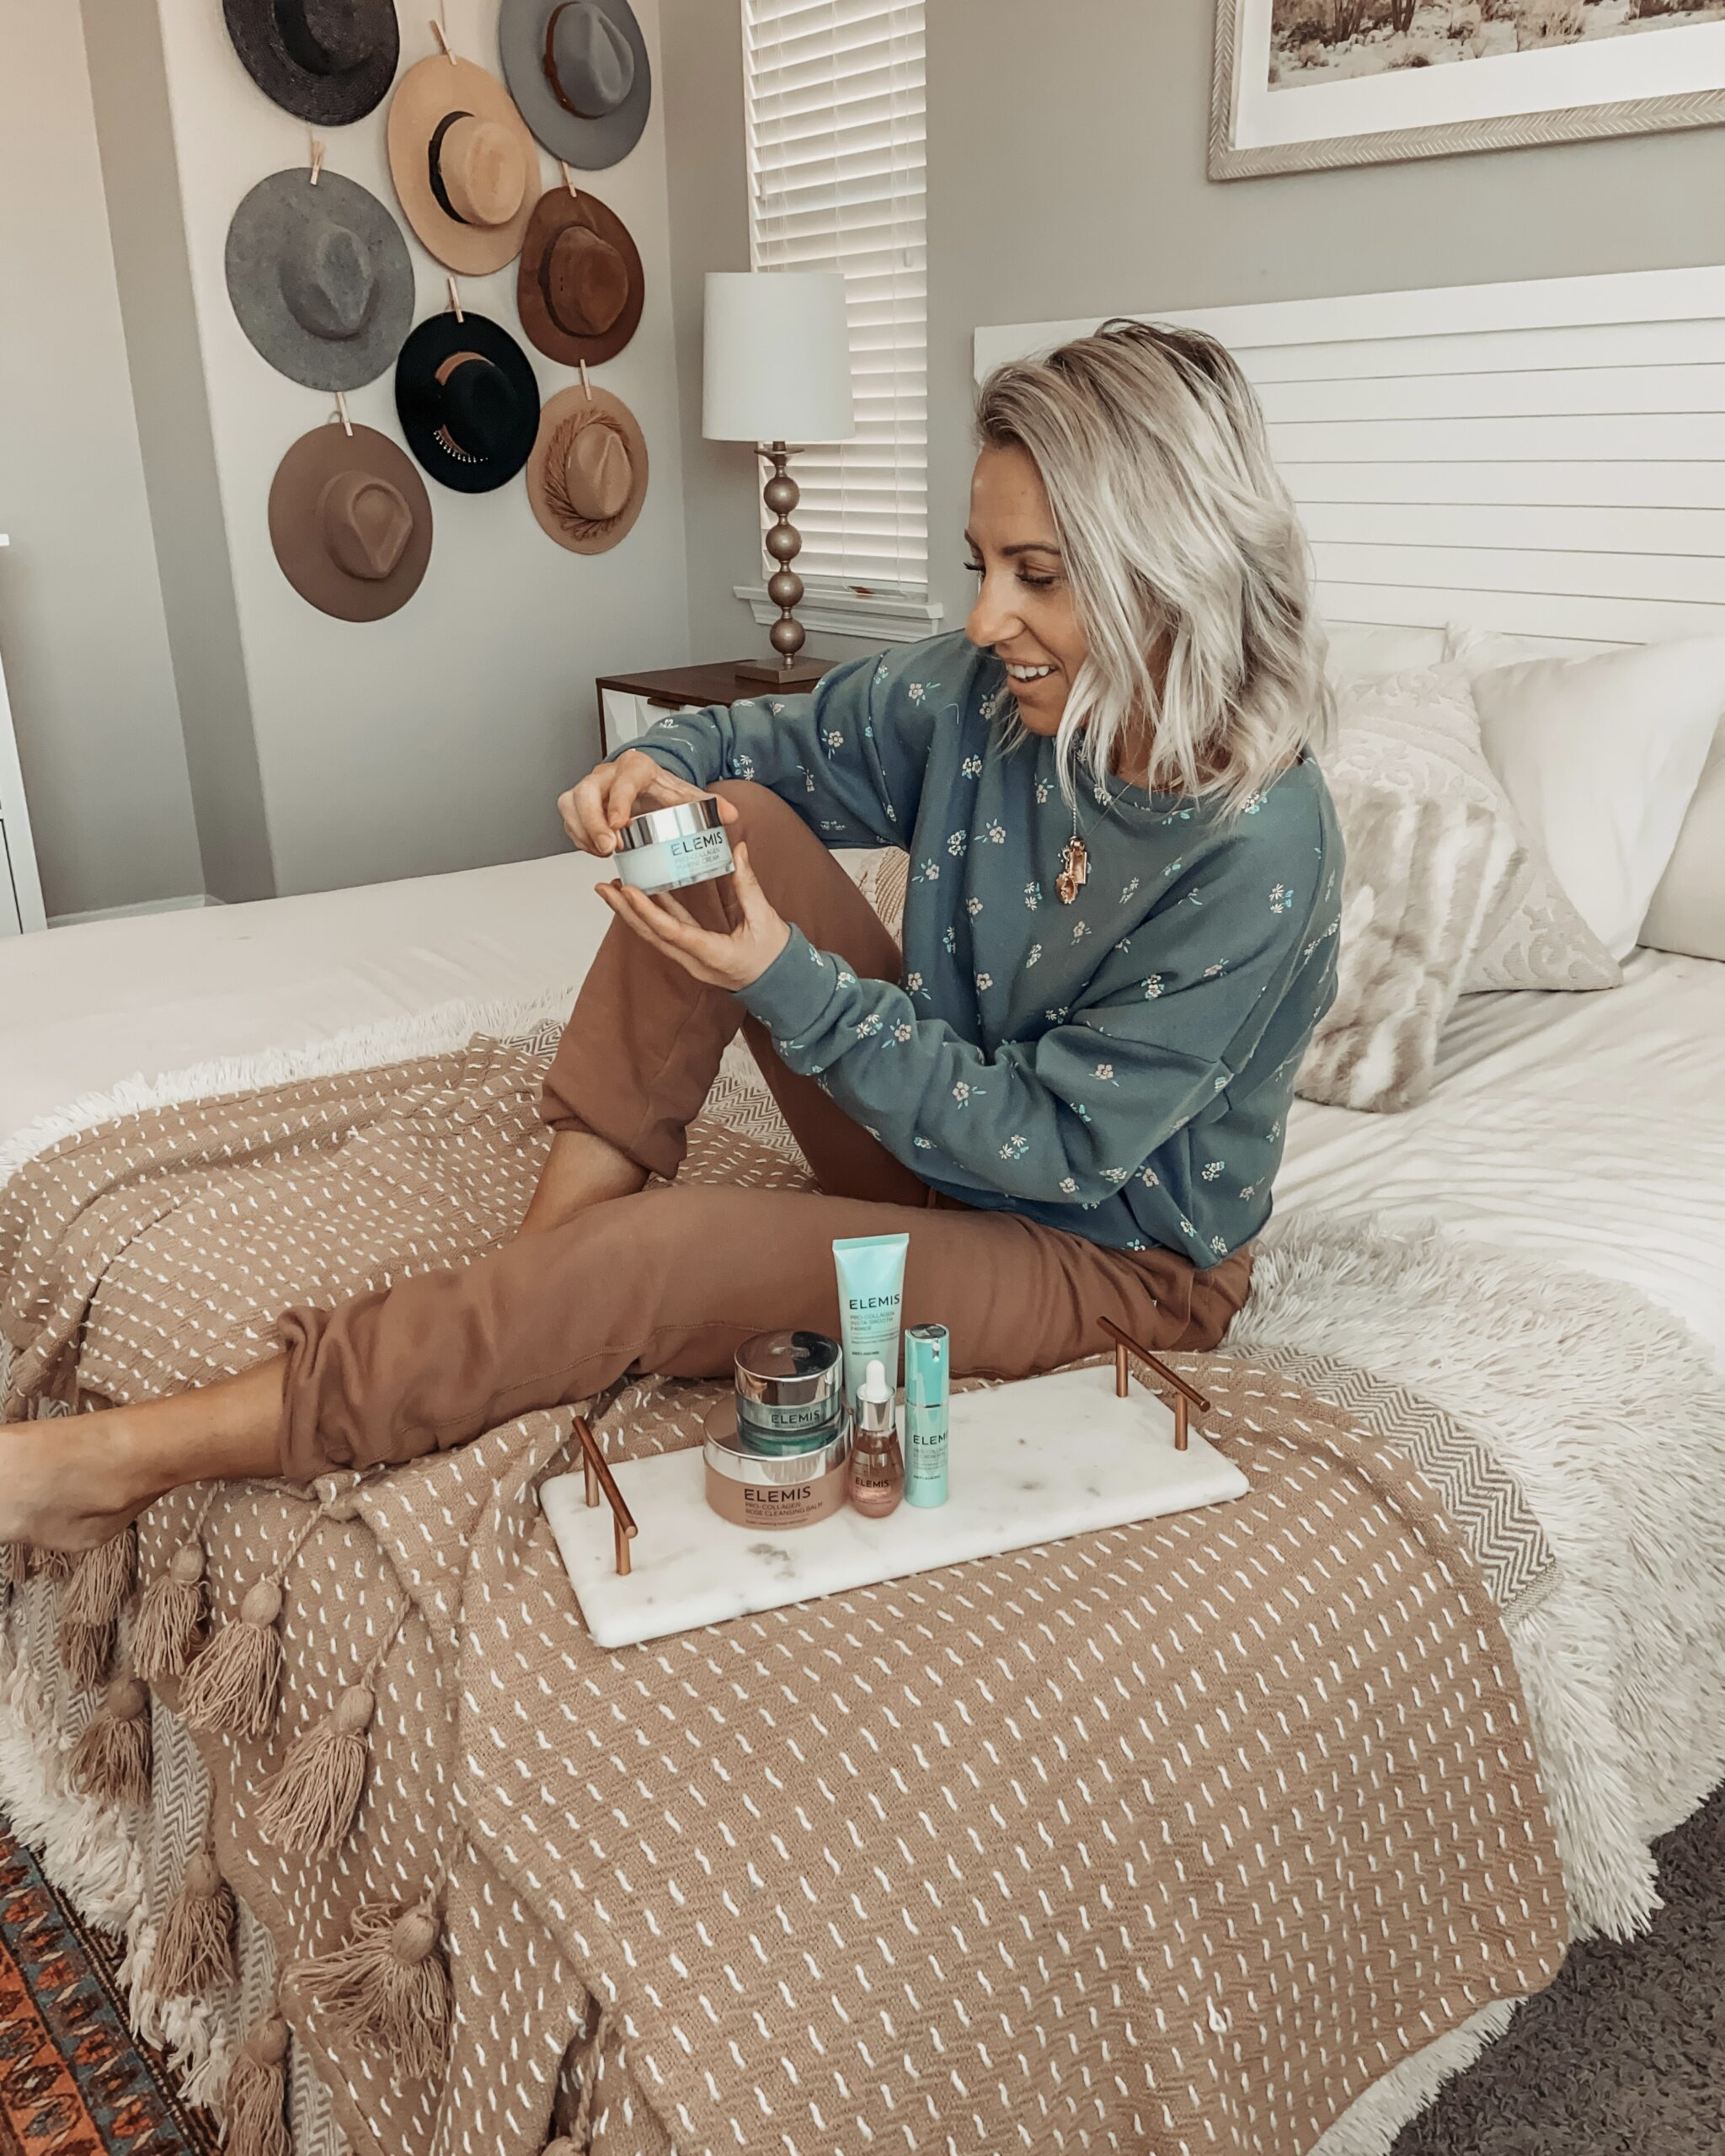 MY HOLY GRAIL DAY CREAM + MORE ELEMIS FAVORITES- Jaclyn De Leon Style + sharing my skincare essential from Elemis + why I can't live without their pro collagen anti wrinkle day cream